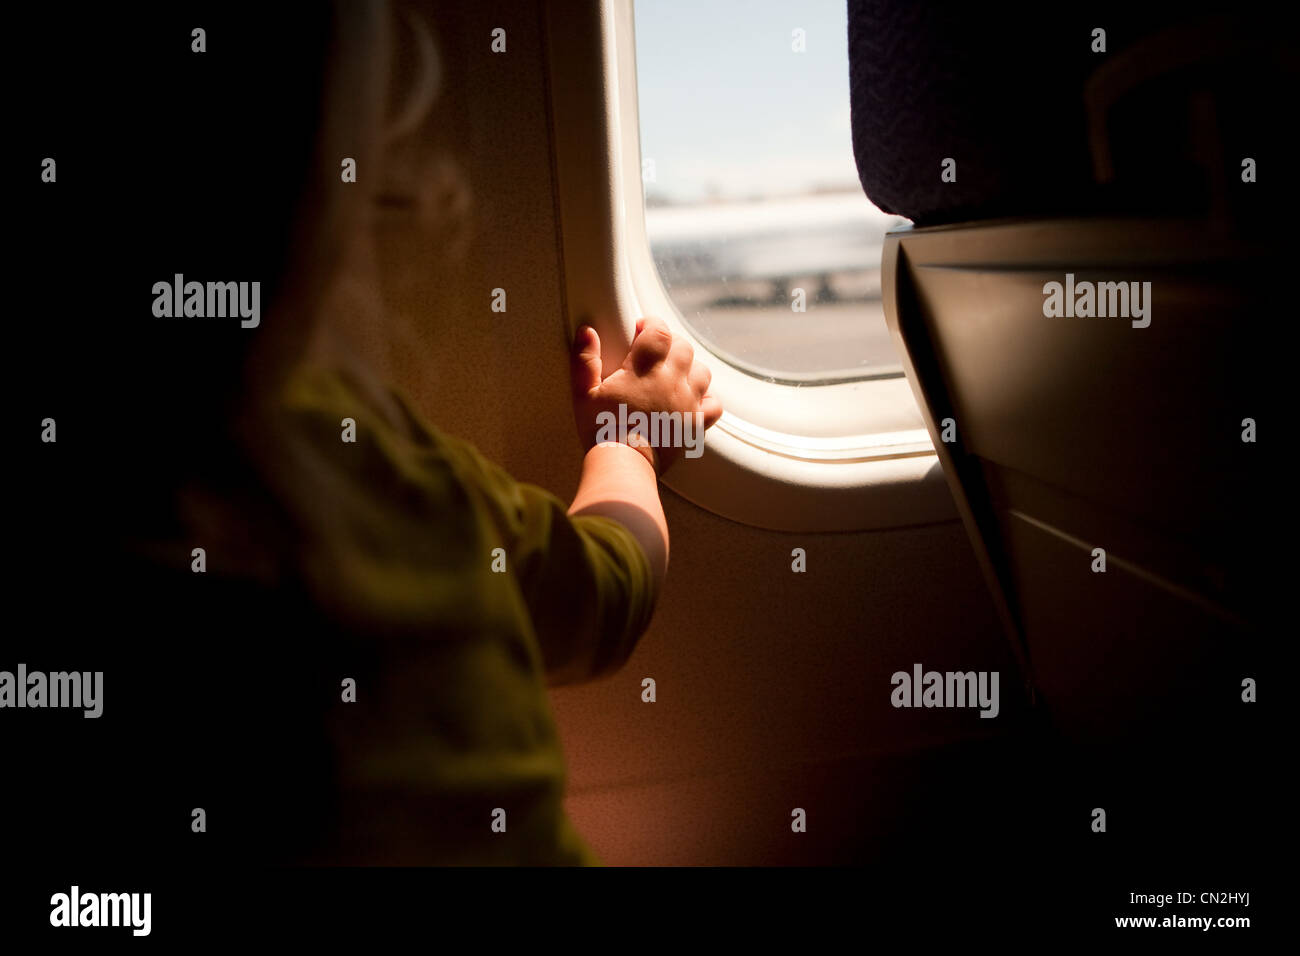 Toddler boy looking through airplane window - Stock Image